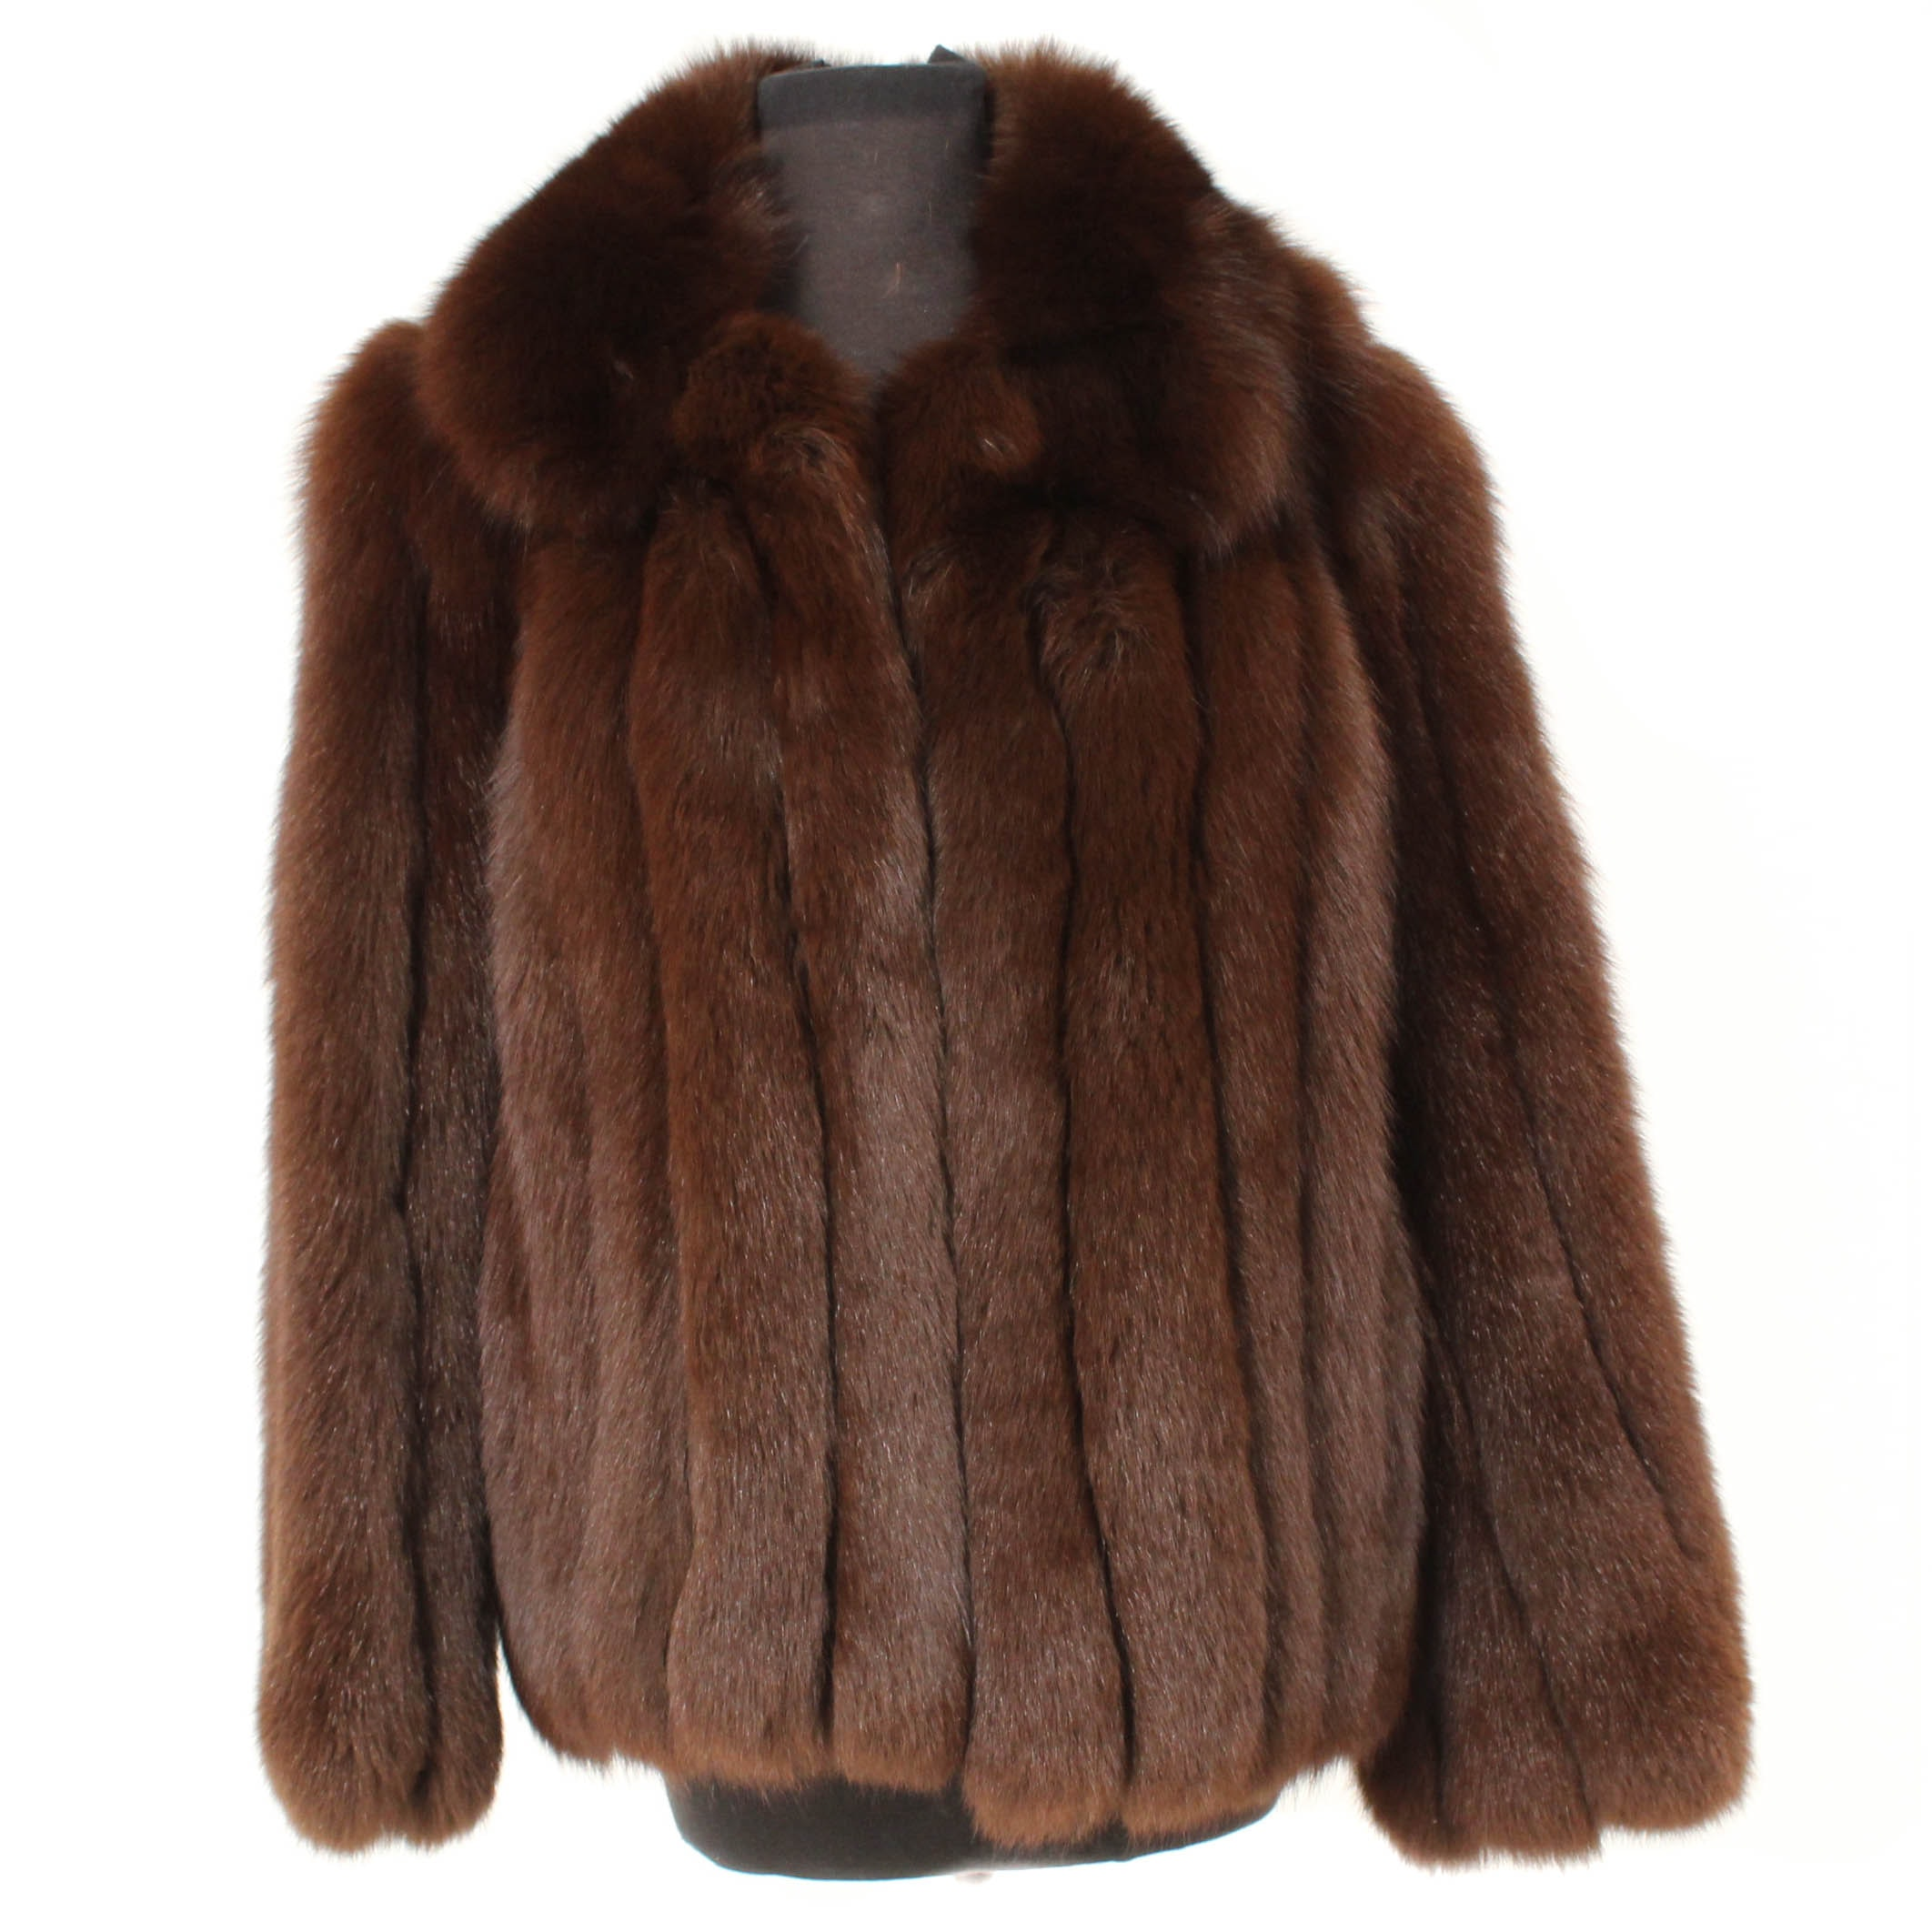 J. Percy for Marvin Richards Dyed Brown Fox Fur Jacket